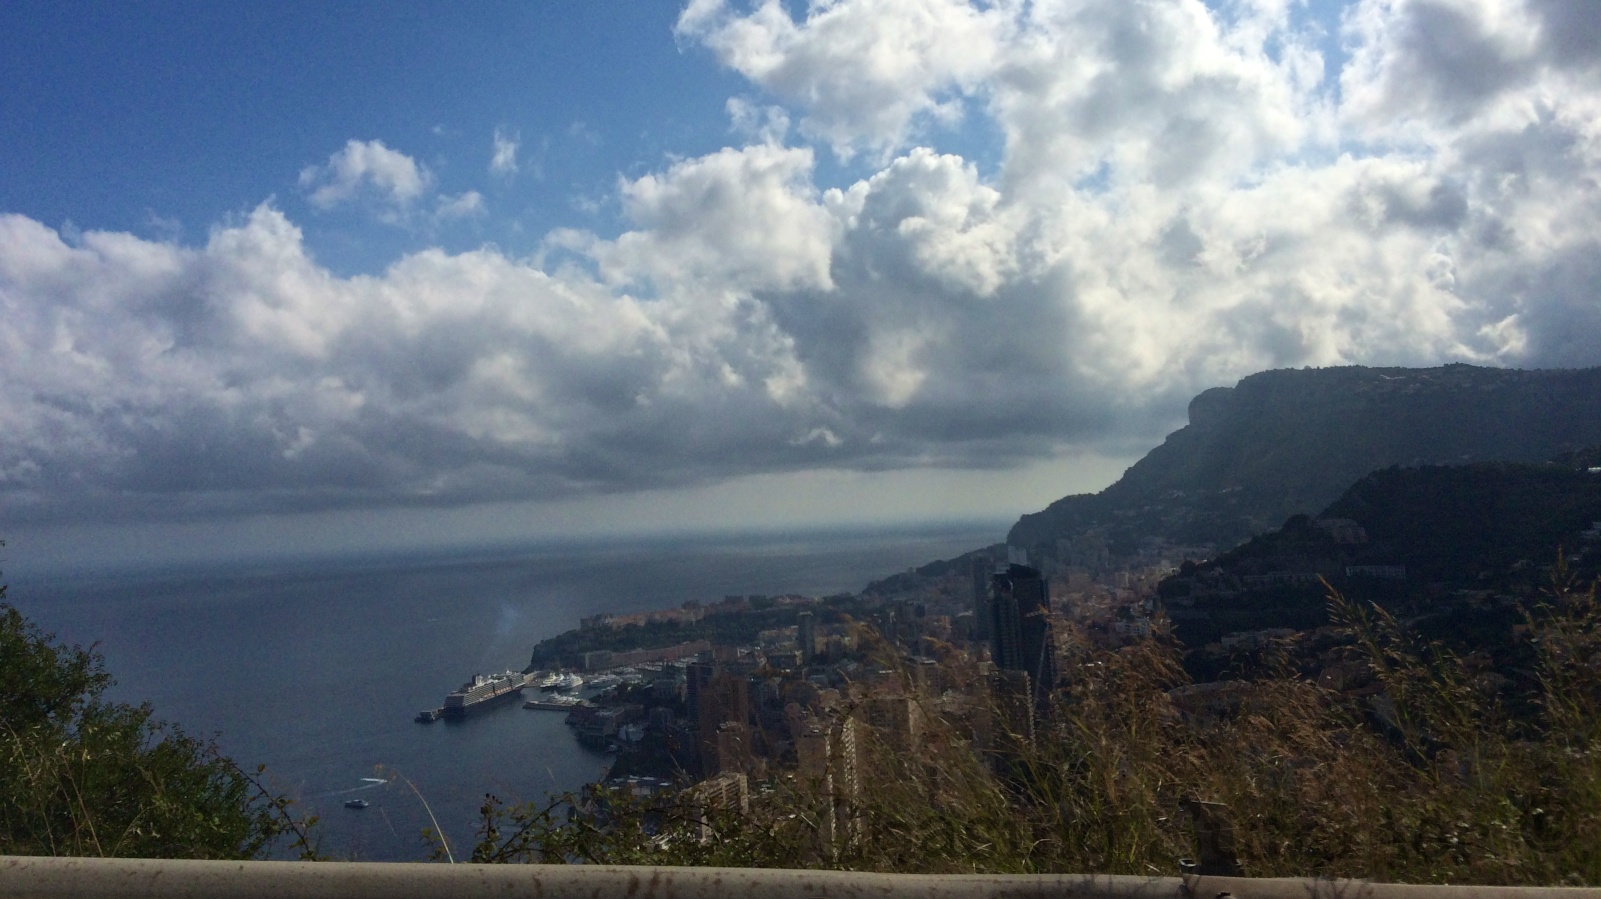 A view of Monaco. A city built on a mountain side